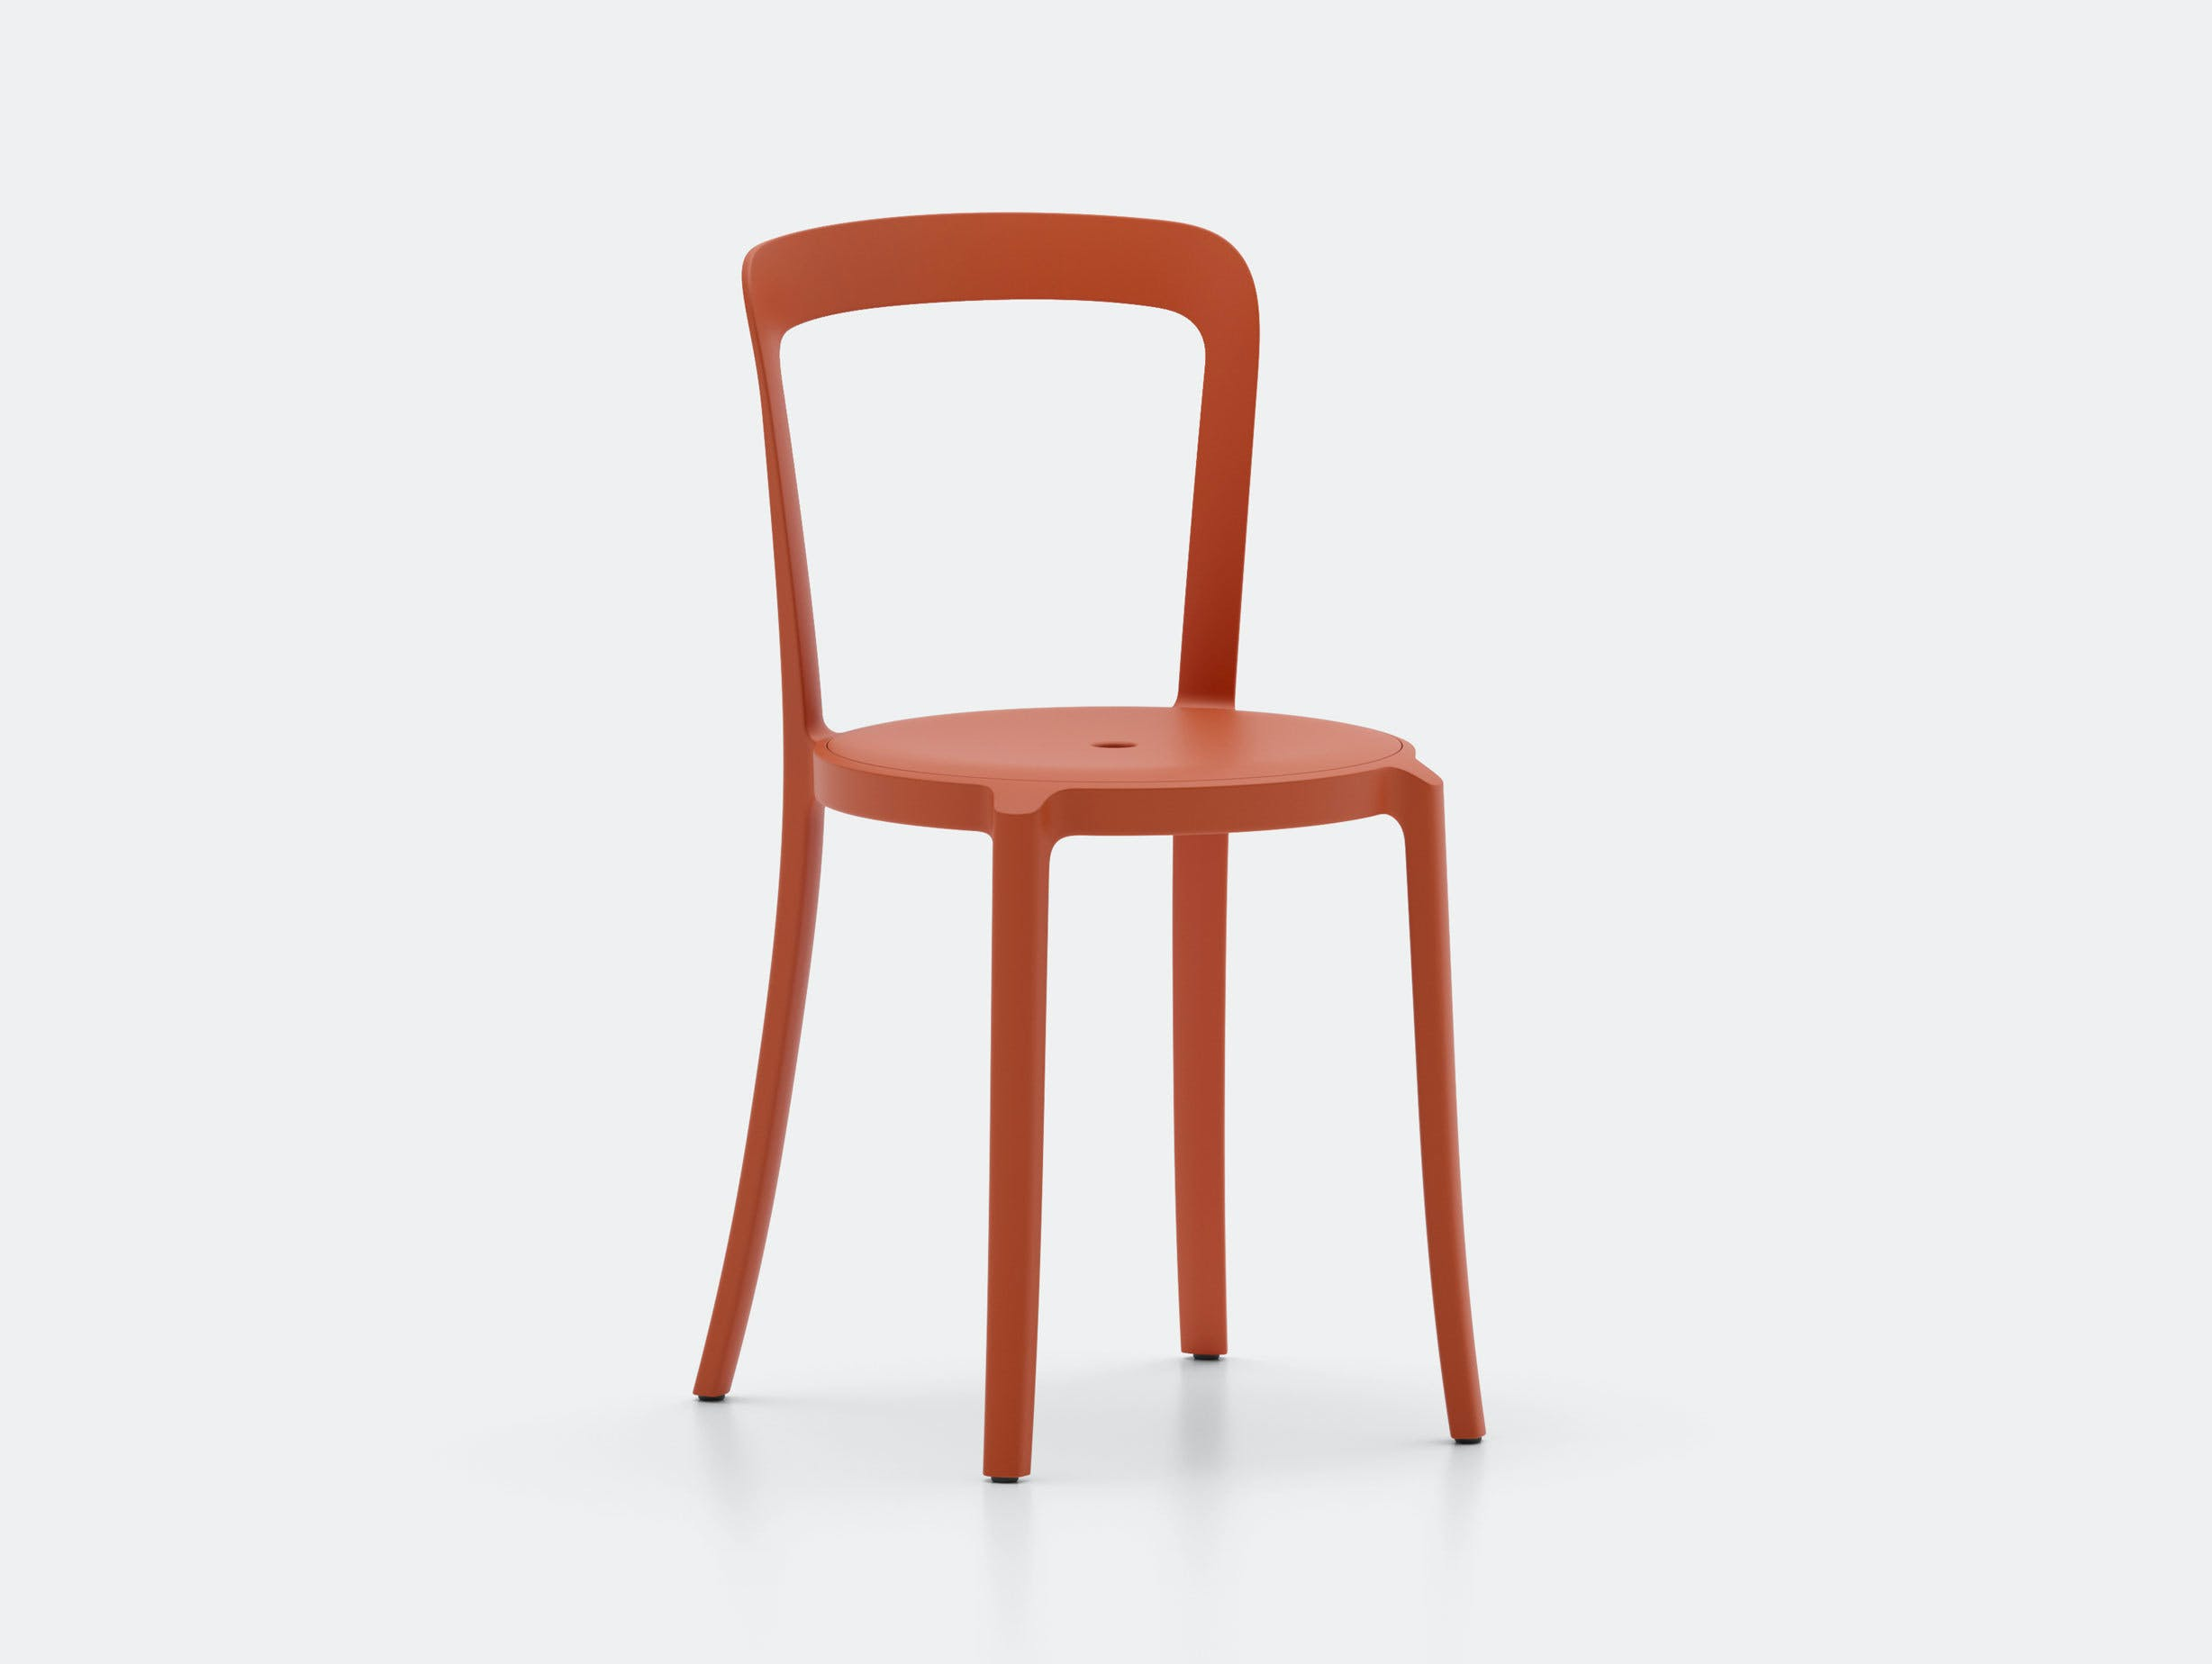 Emeco On and On Chair orange Edward Barber Jay Osgerby